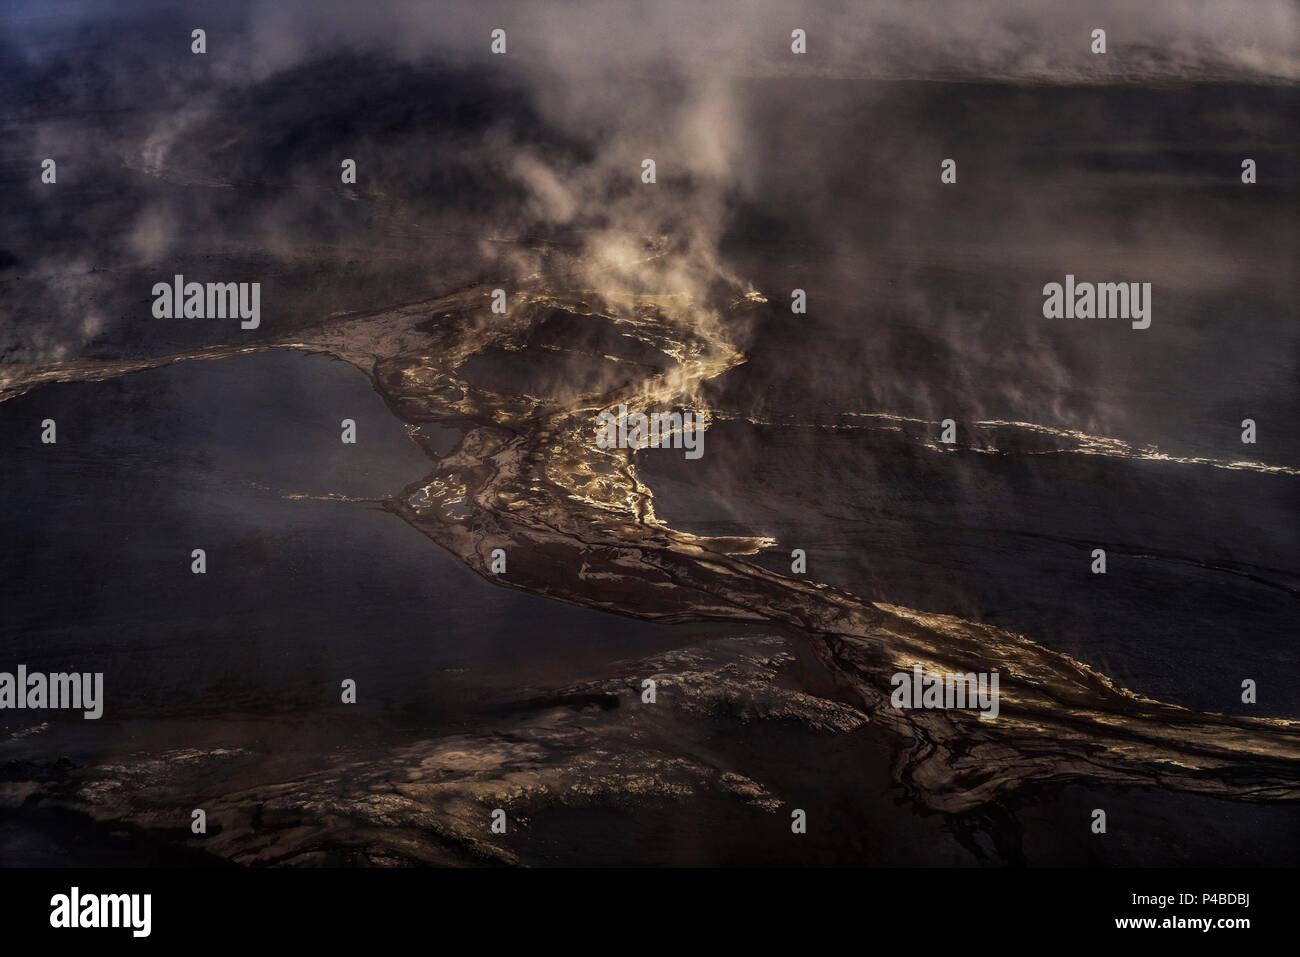 Dust storm in the highlands close to Holuhraun. August 29, 2014 a fissure eruption started in Holuhraun at the northern end of a magma intrusion, which had moved progressively north, from the Bardarbunga volcano. Bardarbunga is a stratovolcano located under Vatnajokull, Iceland's most extensive glacier. - Stock Image